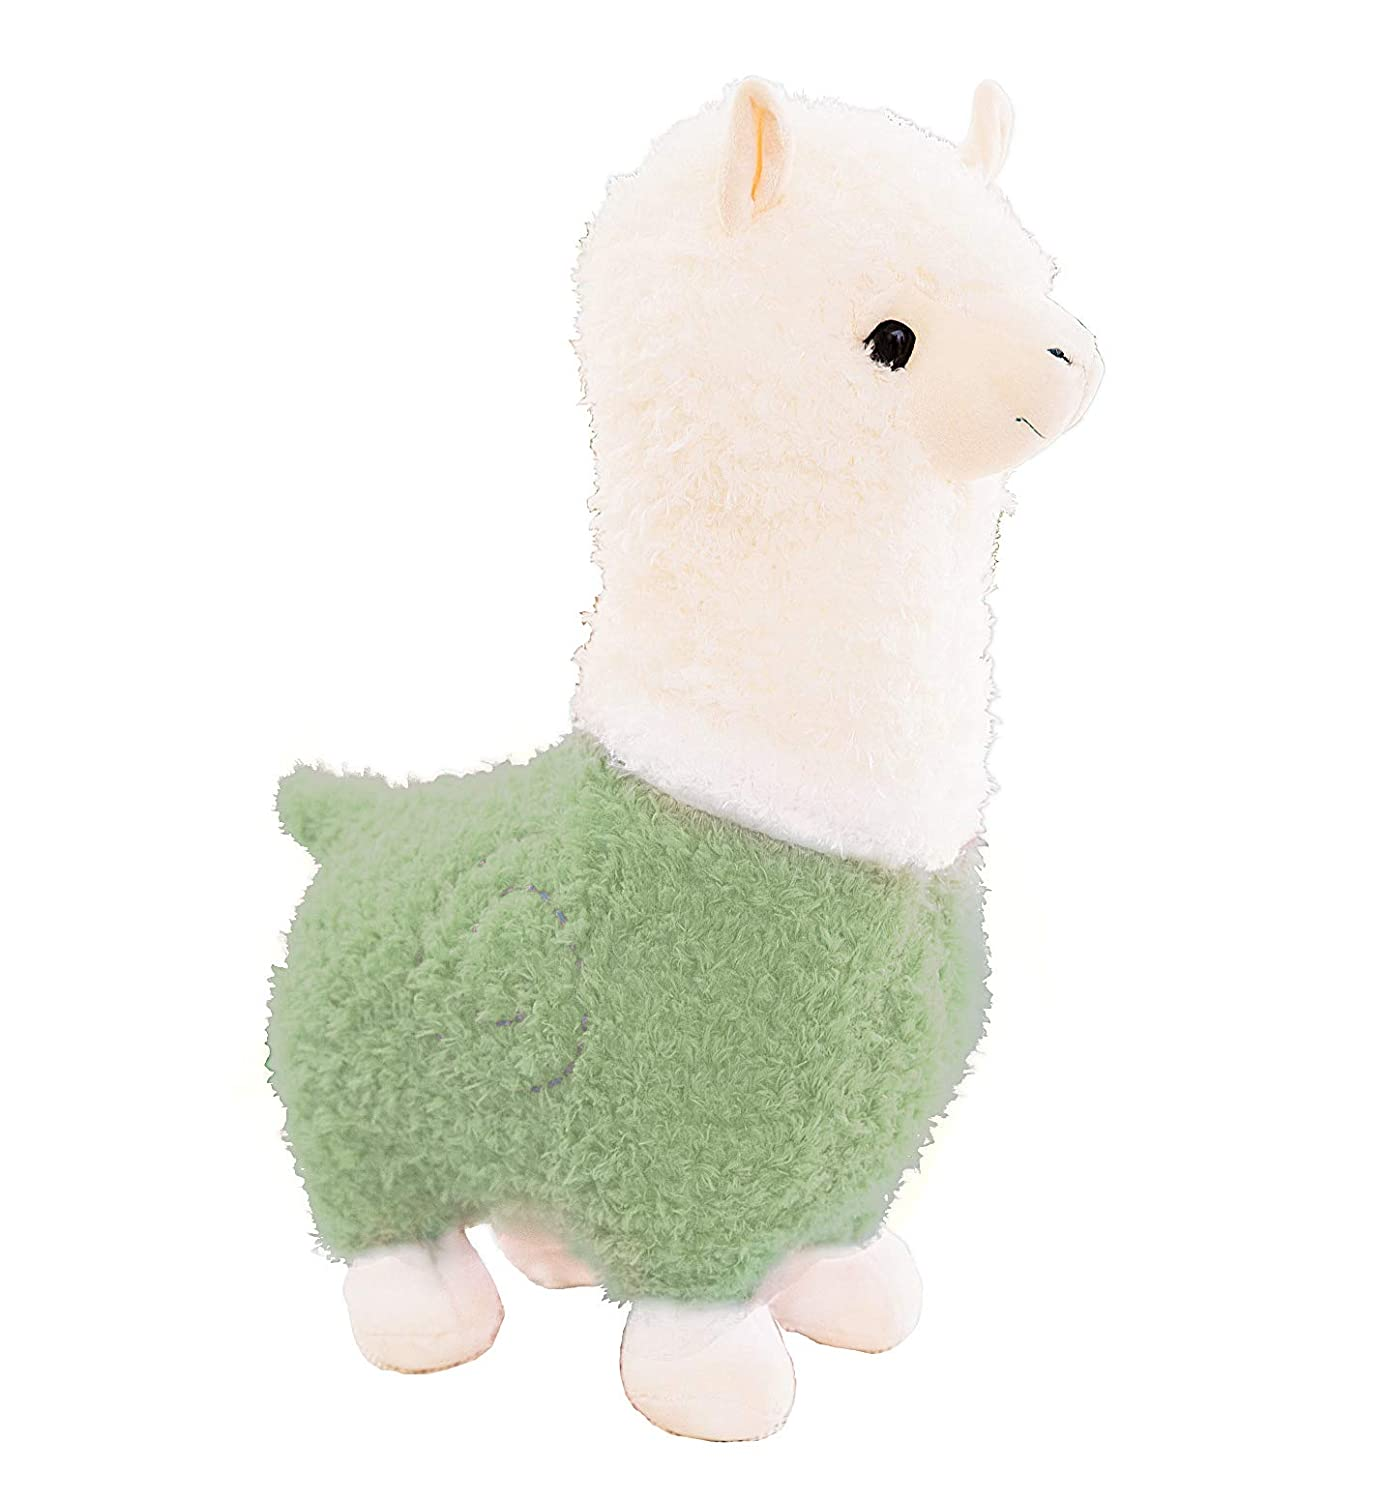 Cute Pink 14 Llama Stuffed Animal Large 14 Doll Plushie Hug Pillow Soft Fluffy Cushion Super Kawaii Gift for Birthday Girls and Lovers Washable Spring Country Alpaca Plush Toy